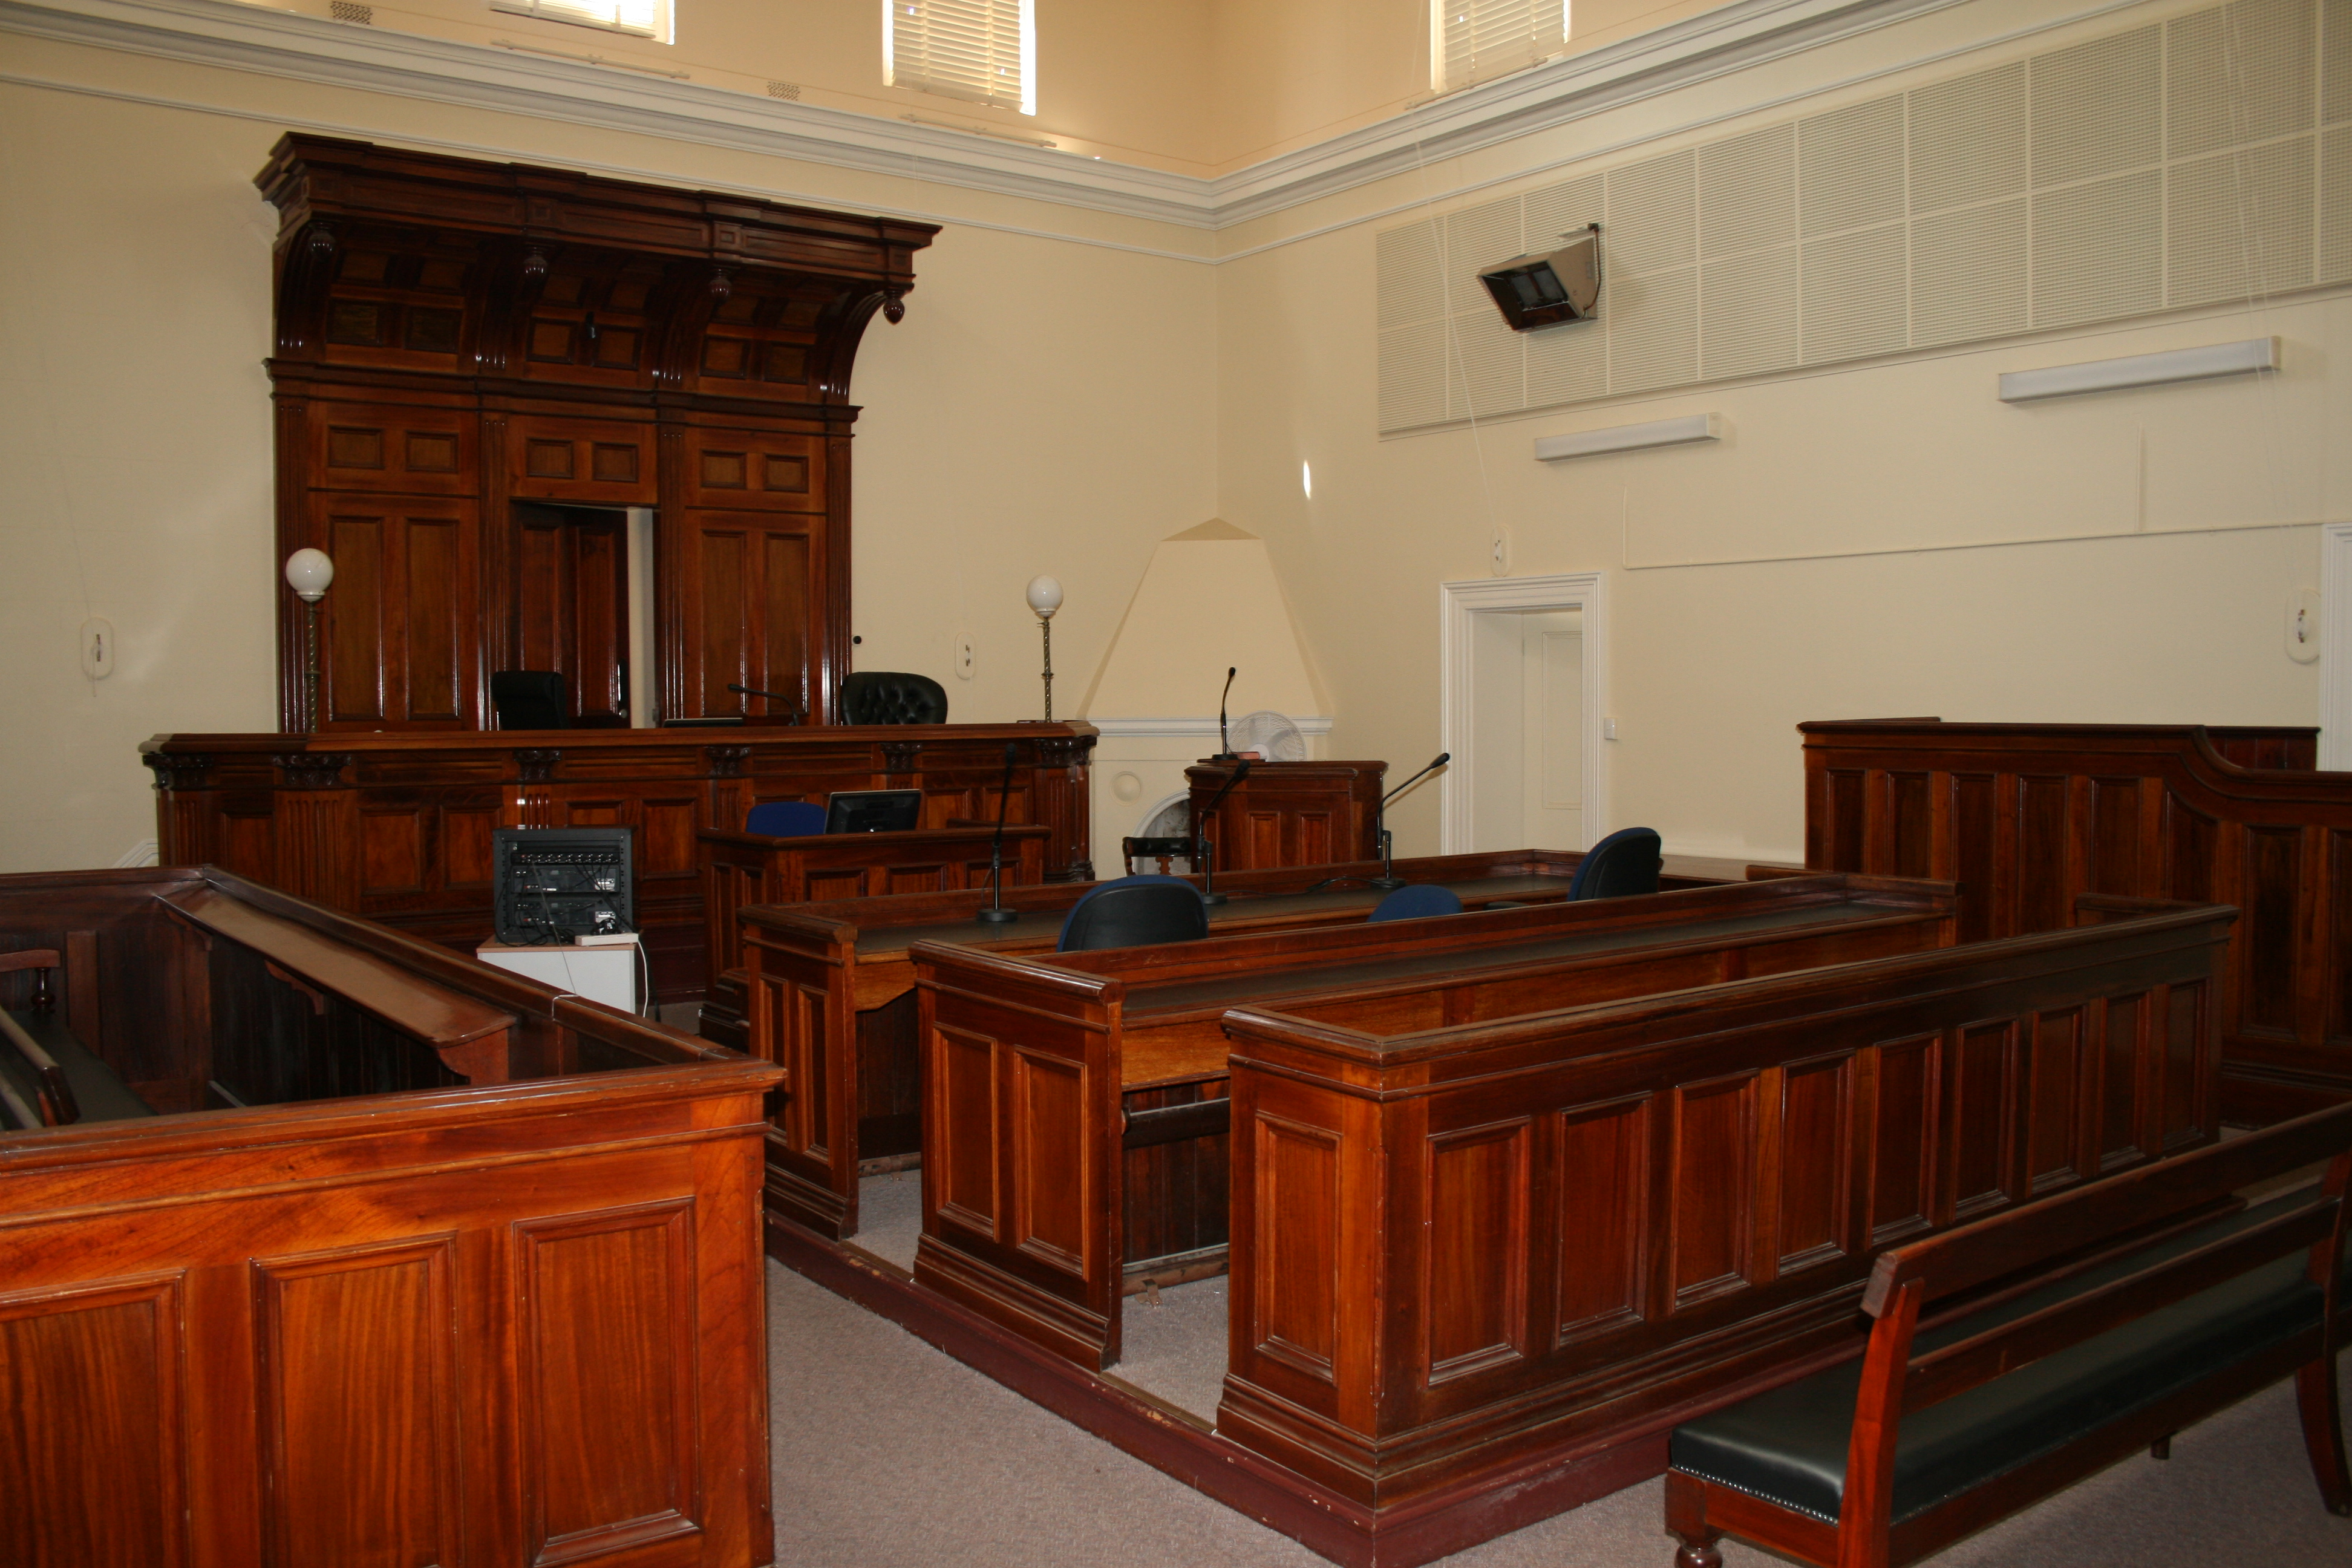 Courtroom at Stawell Magistrates' Court